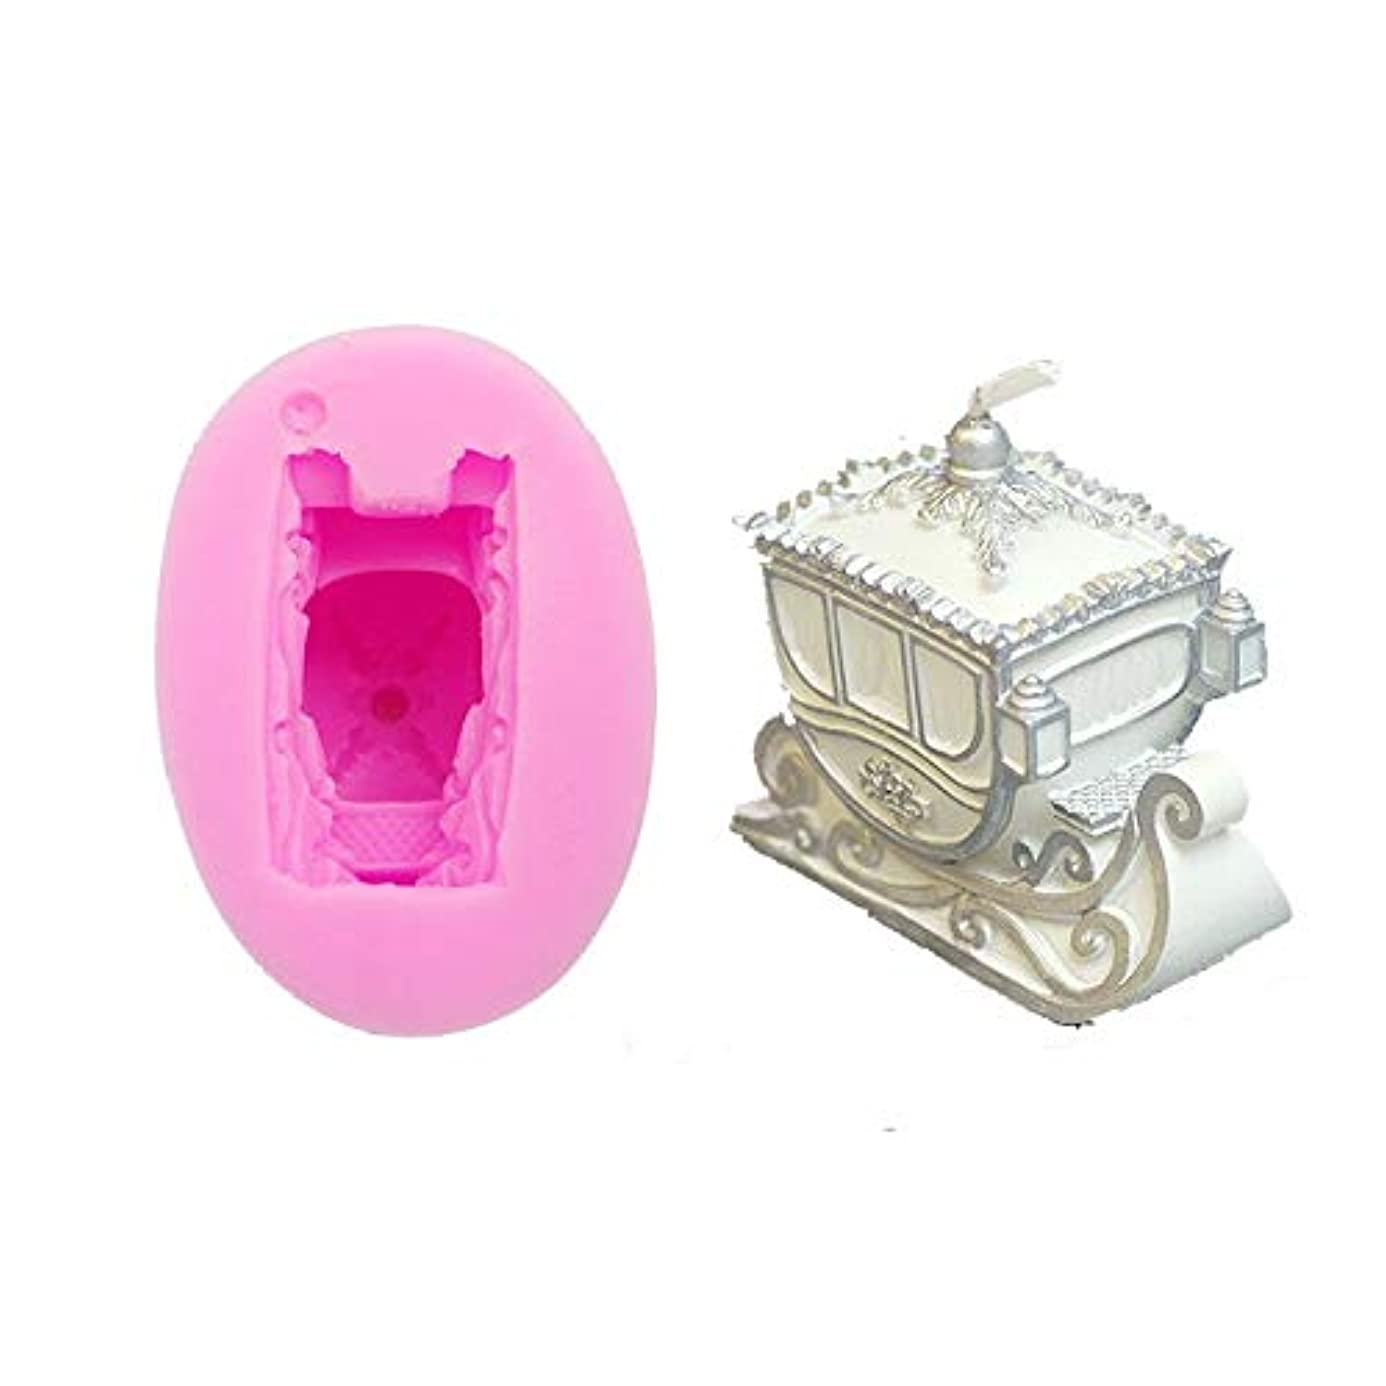 Silicon Mould - Diy 3d Christmas Sled Carriage Fondant Cake Mold Clay Candle Mould Soap Moulds - Mould Moulds Soap Molds Candle Cake Fondant Clay Extruders Mold Mould Embroidery Sequin Carr